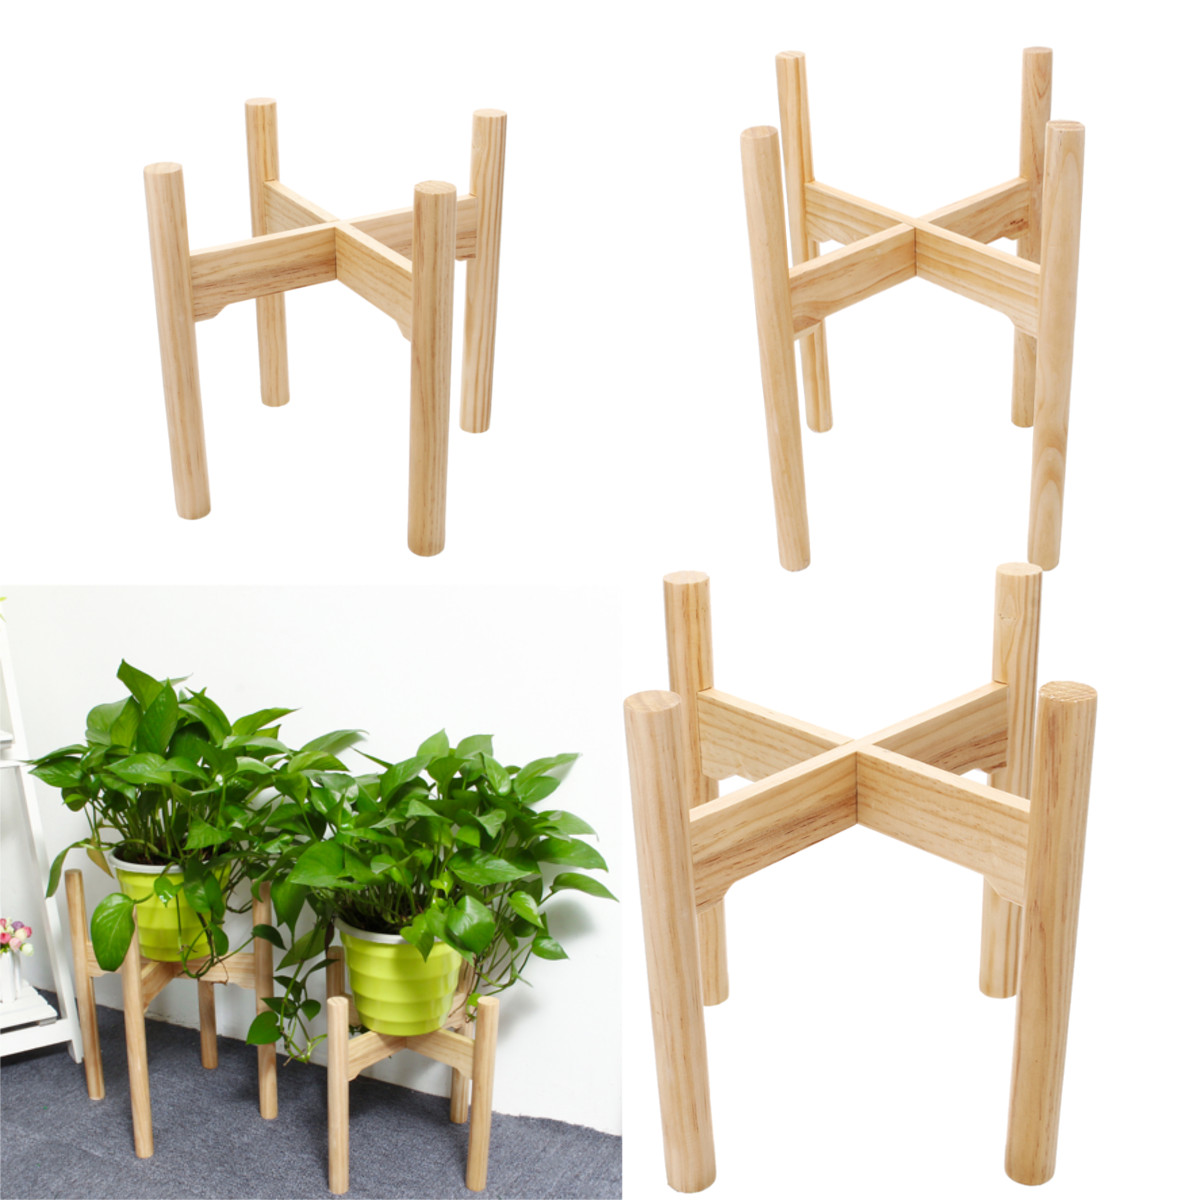 Furniture New Wooden Plant Stand Flower Pot Garden Rack Stand Flower Display Storage Rack Wood Shelf